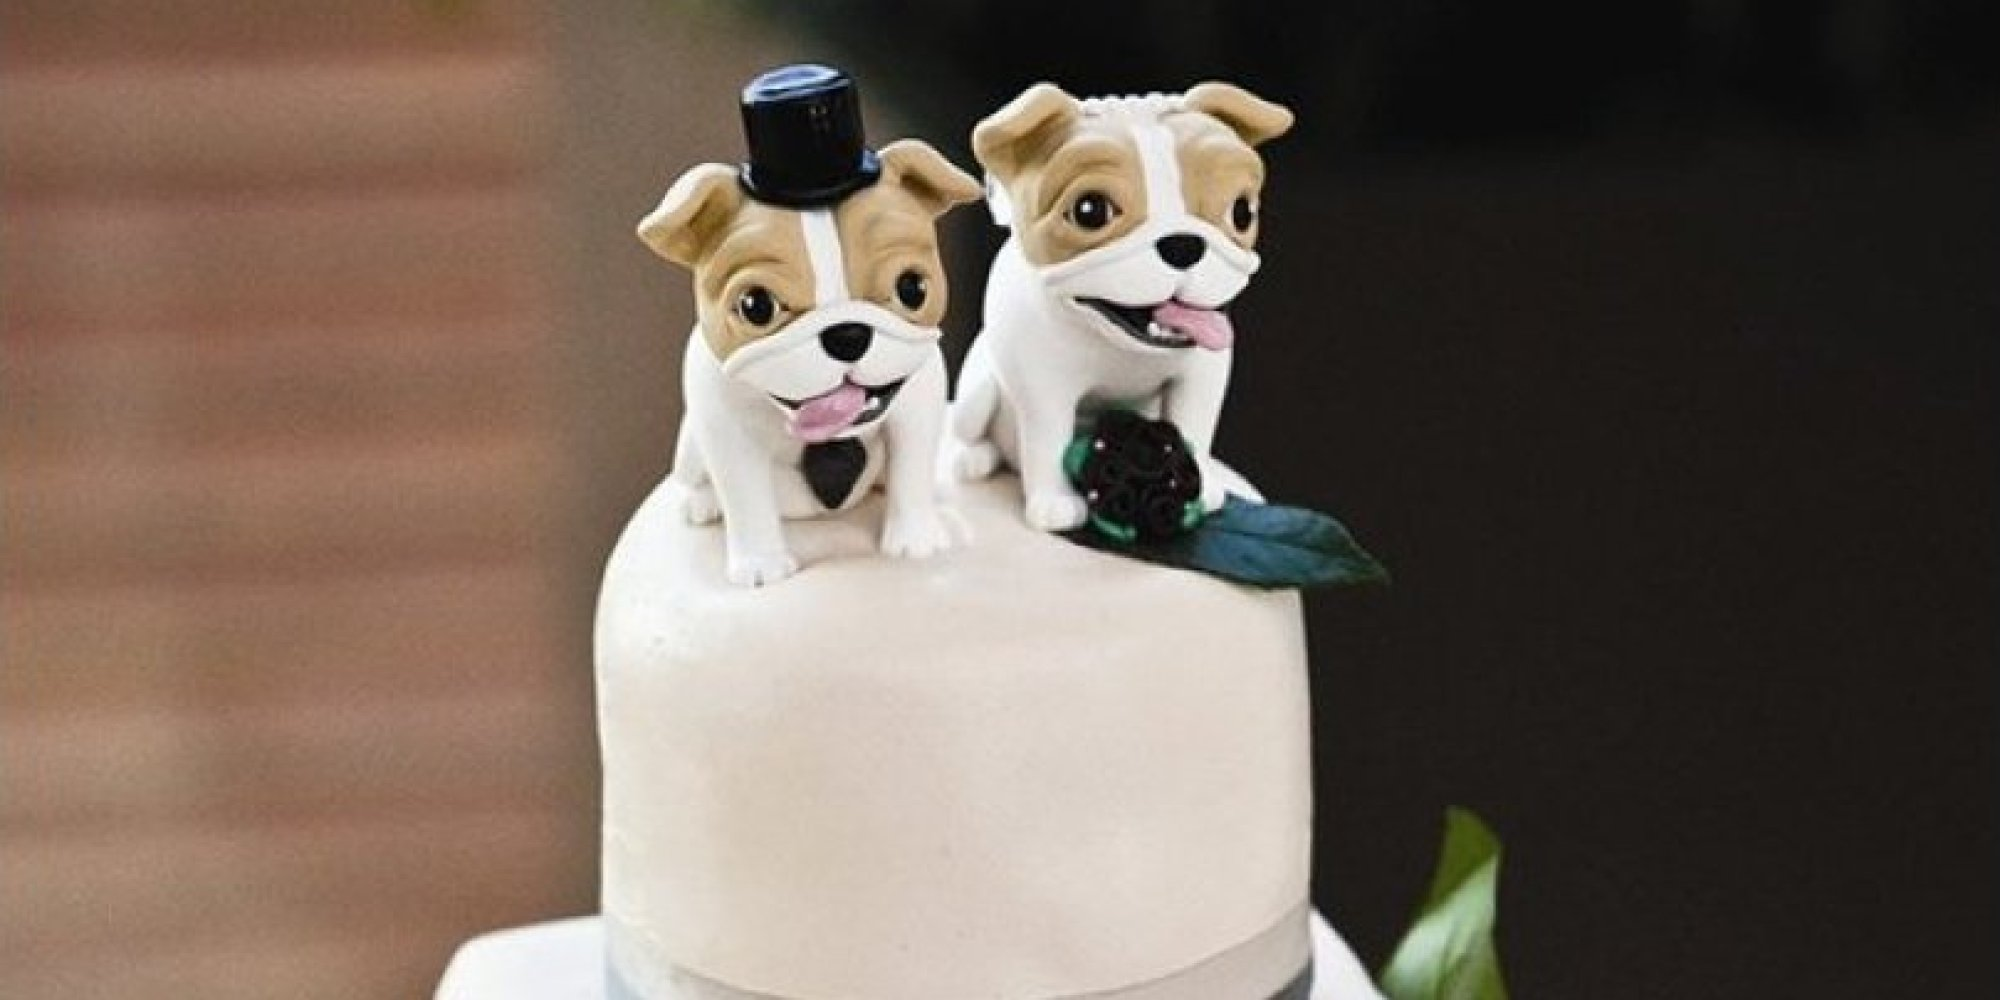 Animal Cake Toppers Are A Super Cute Option For The Young